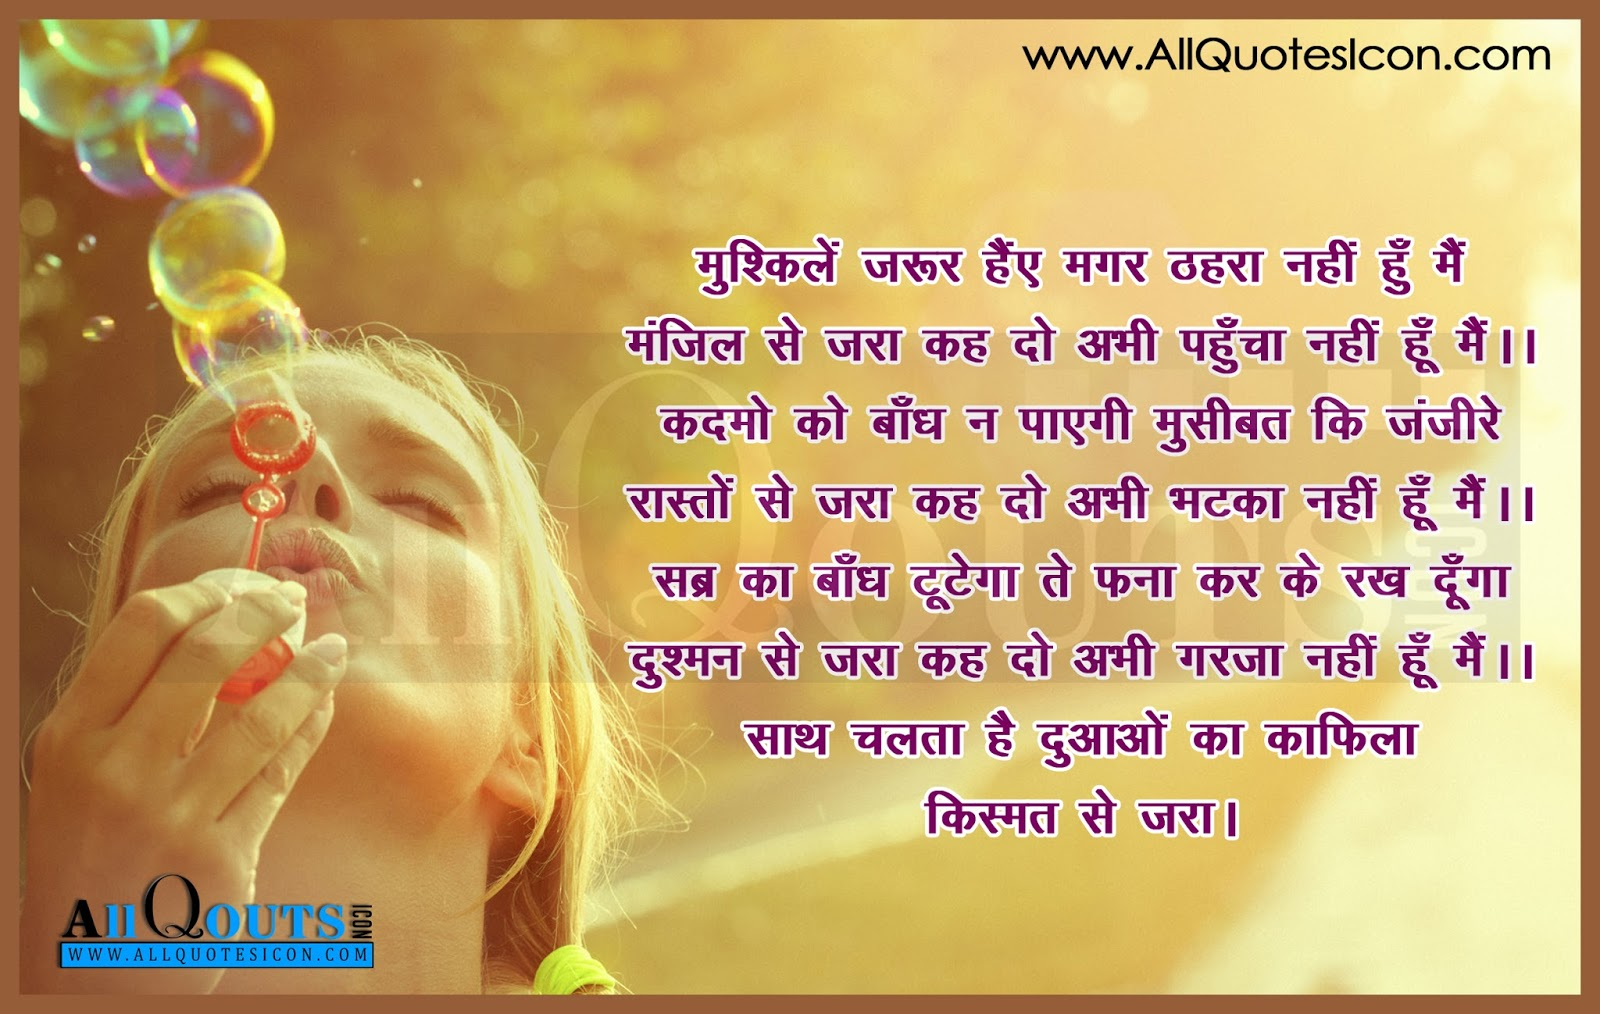 Beatiful Quotes Of Life In Hindi Shayari Www Allquotesicon Com